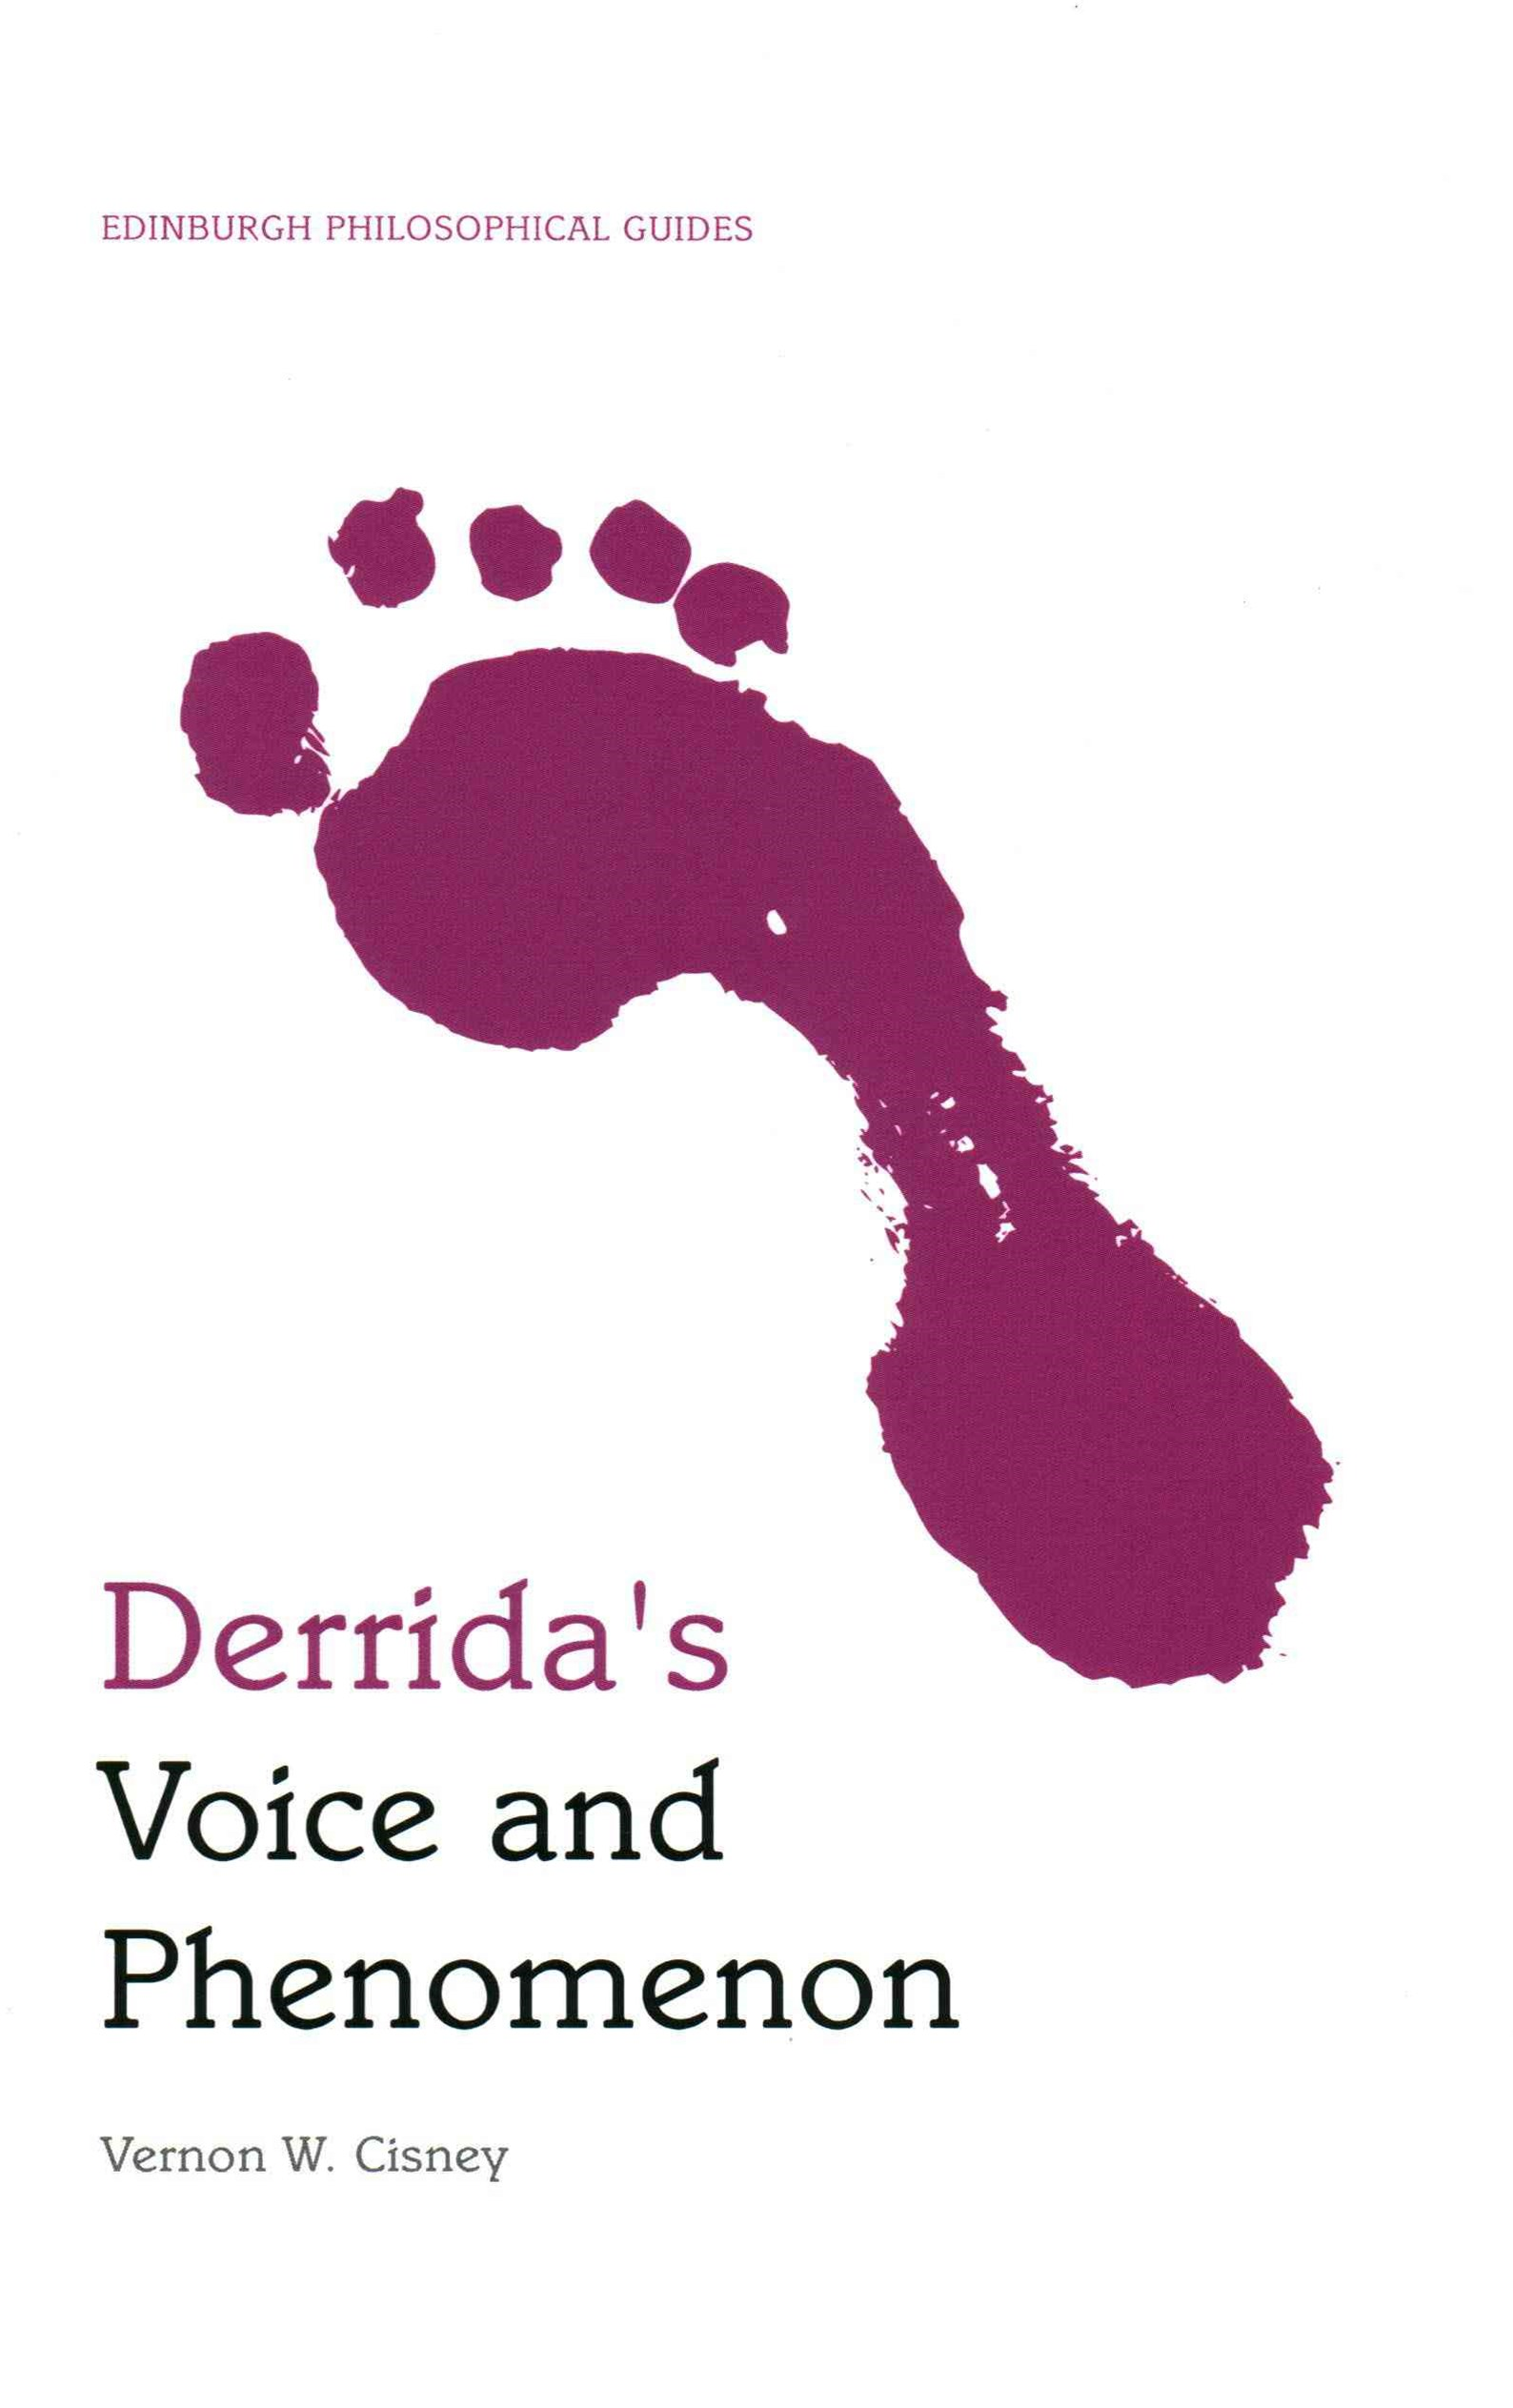 Derrida's Voice and Phenomenon